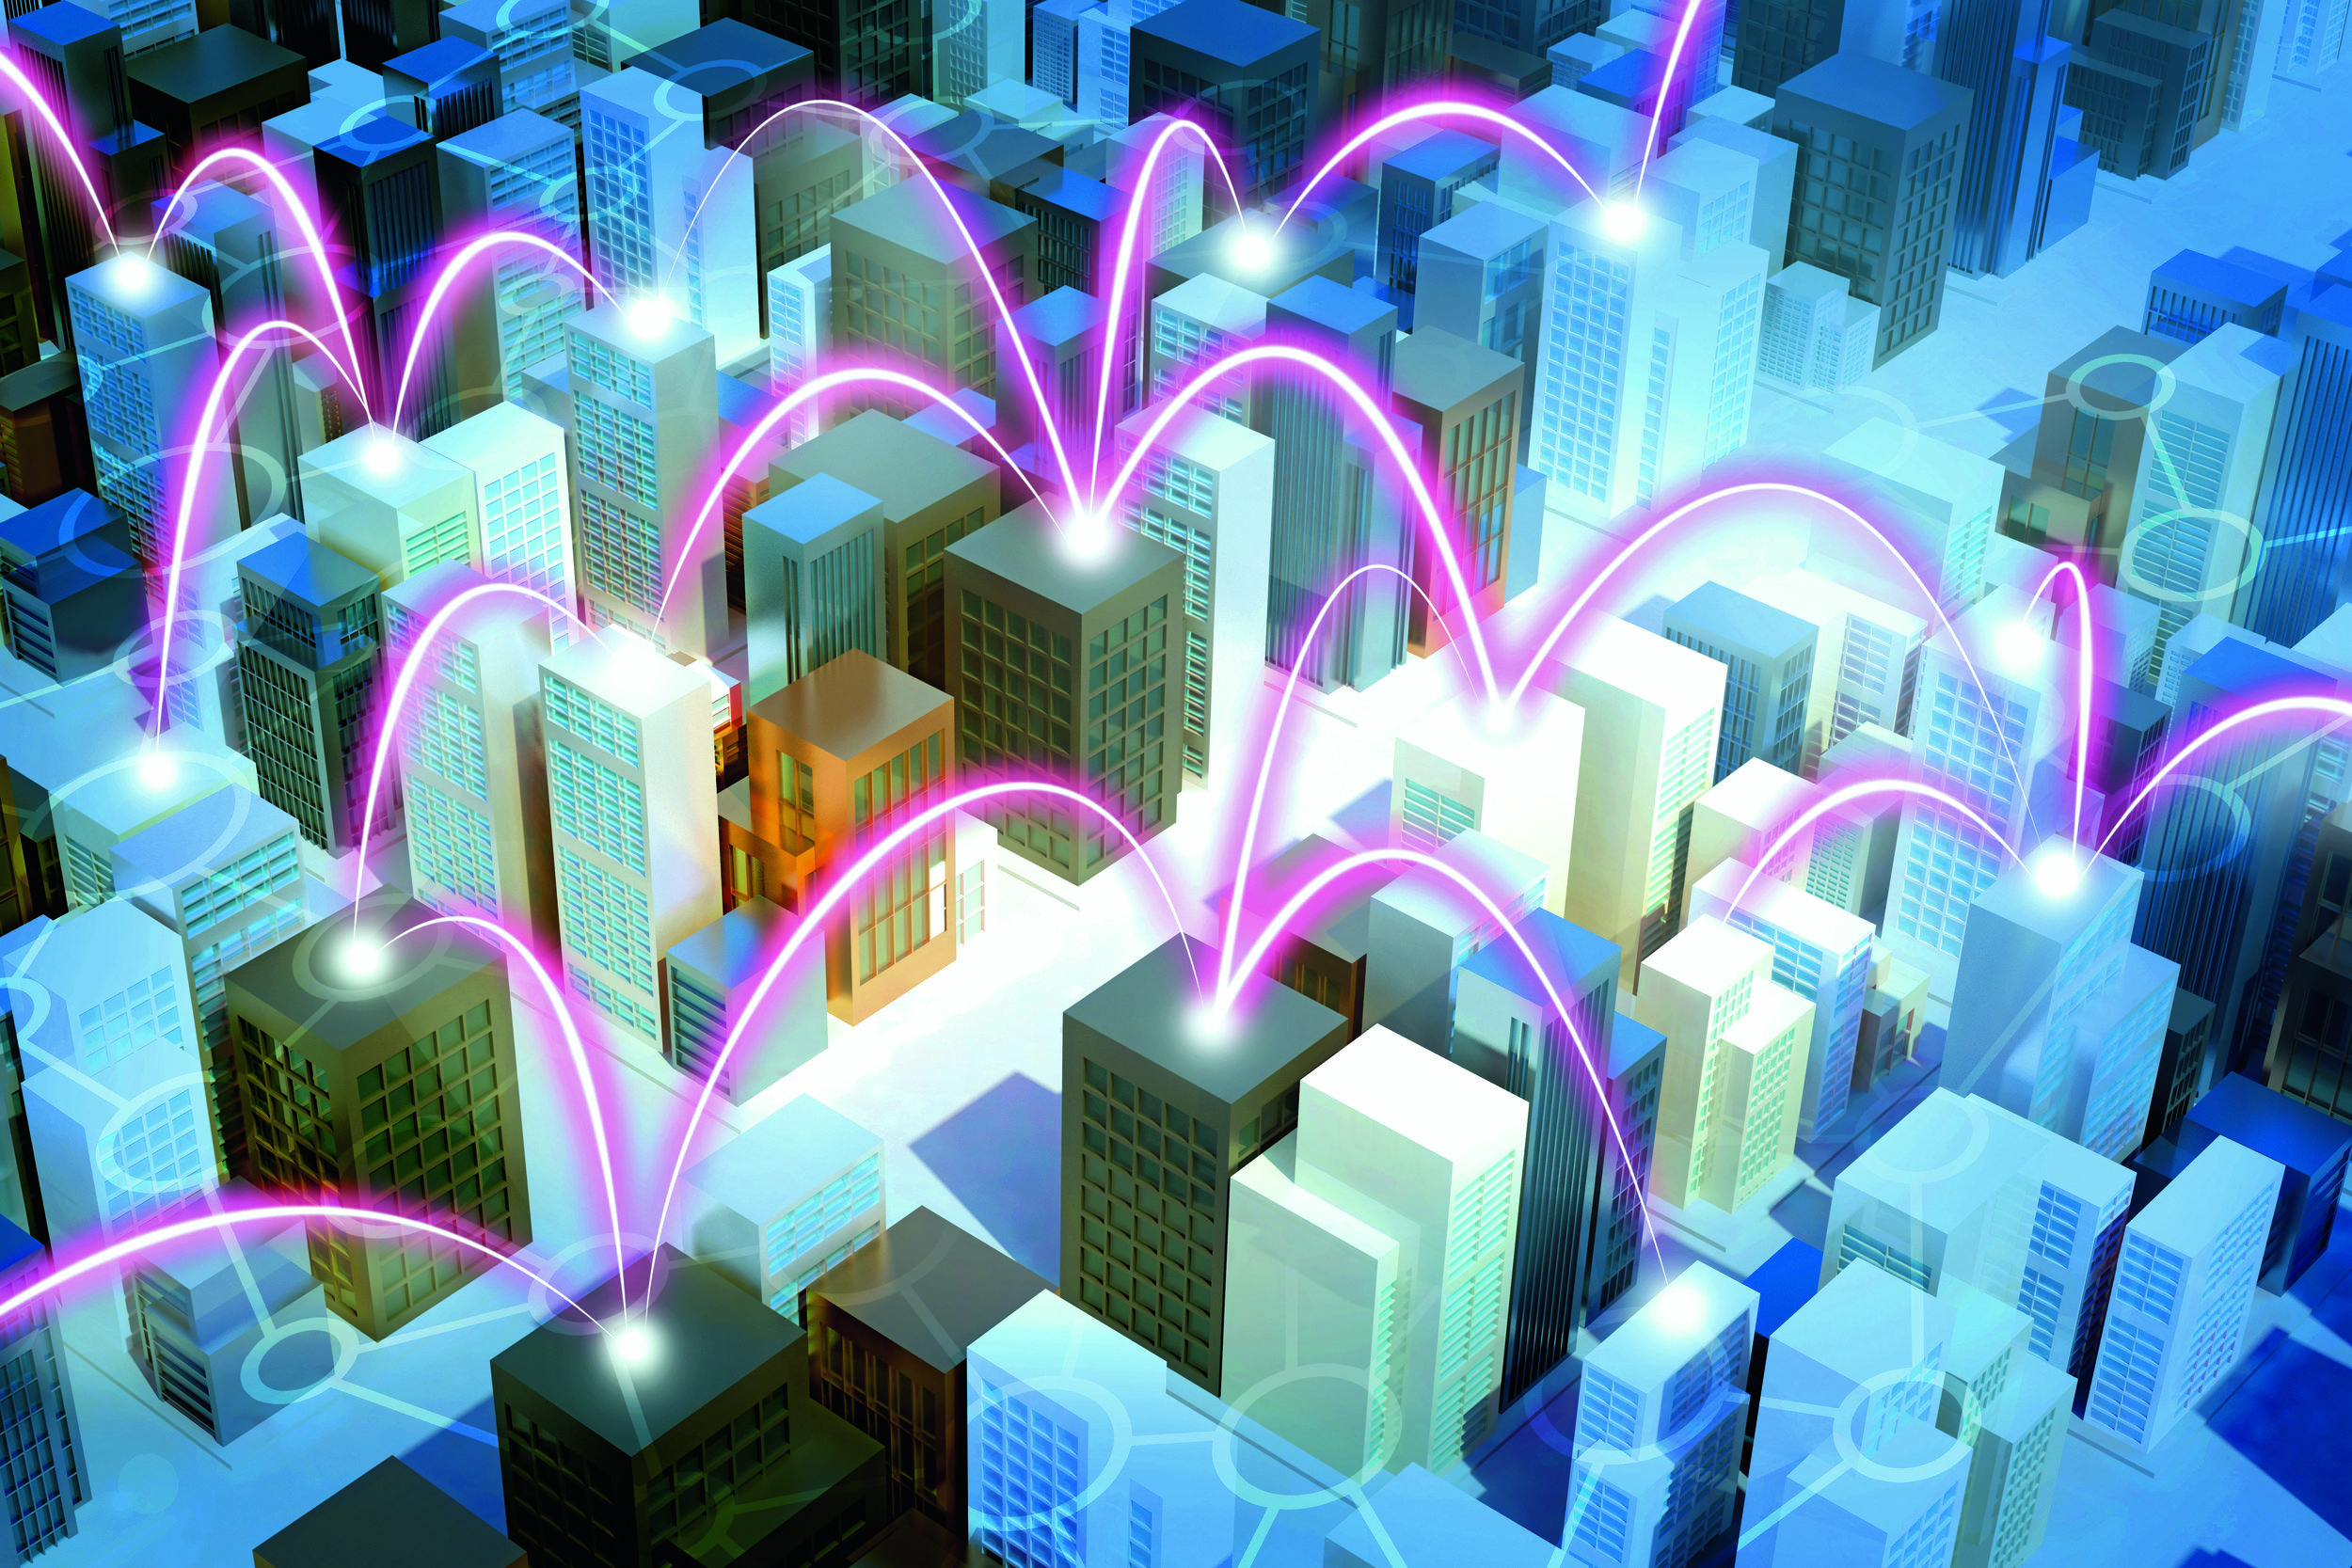 Today, 54% of the world's population lives in urban areas, a pro- portion that is expected to increase to 66% by 2050. Mobile com- munications will be an essential component to delivering on smart city promises. To enable smart cities to thrive and host successful businesses in the digital era, their technological infrastructure must be capable of managing the increased demand on network usage. Therefore it will be a future focal point of P3 communica- tions to determine whether cities become truly smart by taking an even closer look at their advances in connectivity.